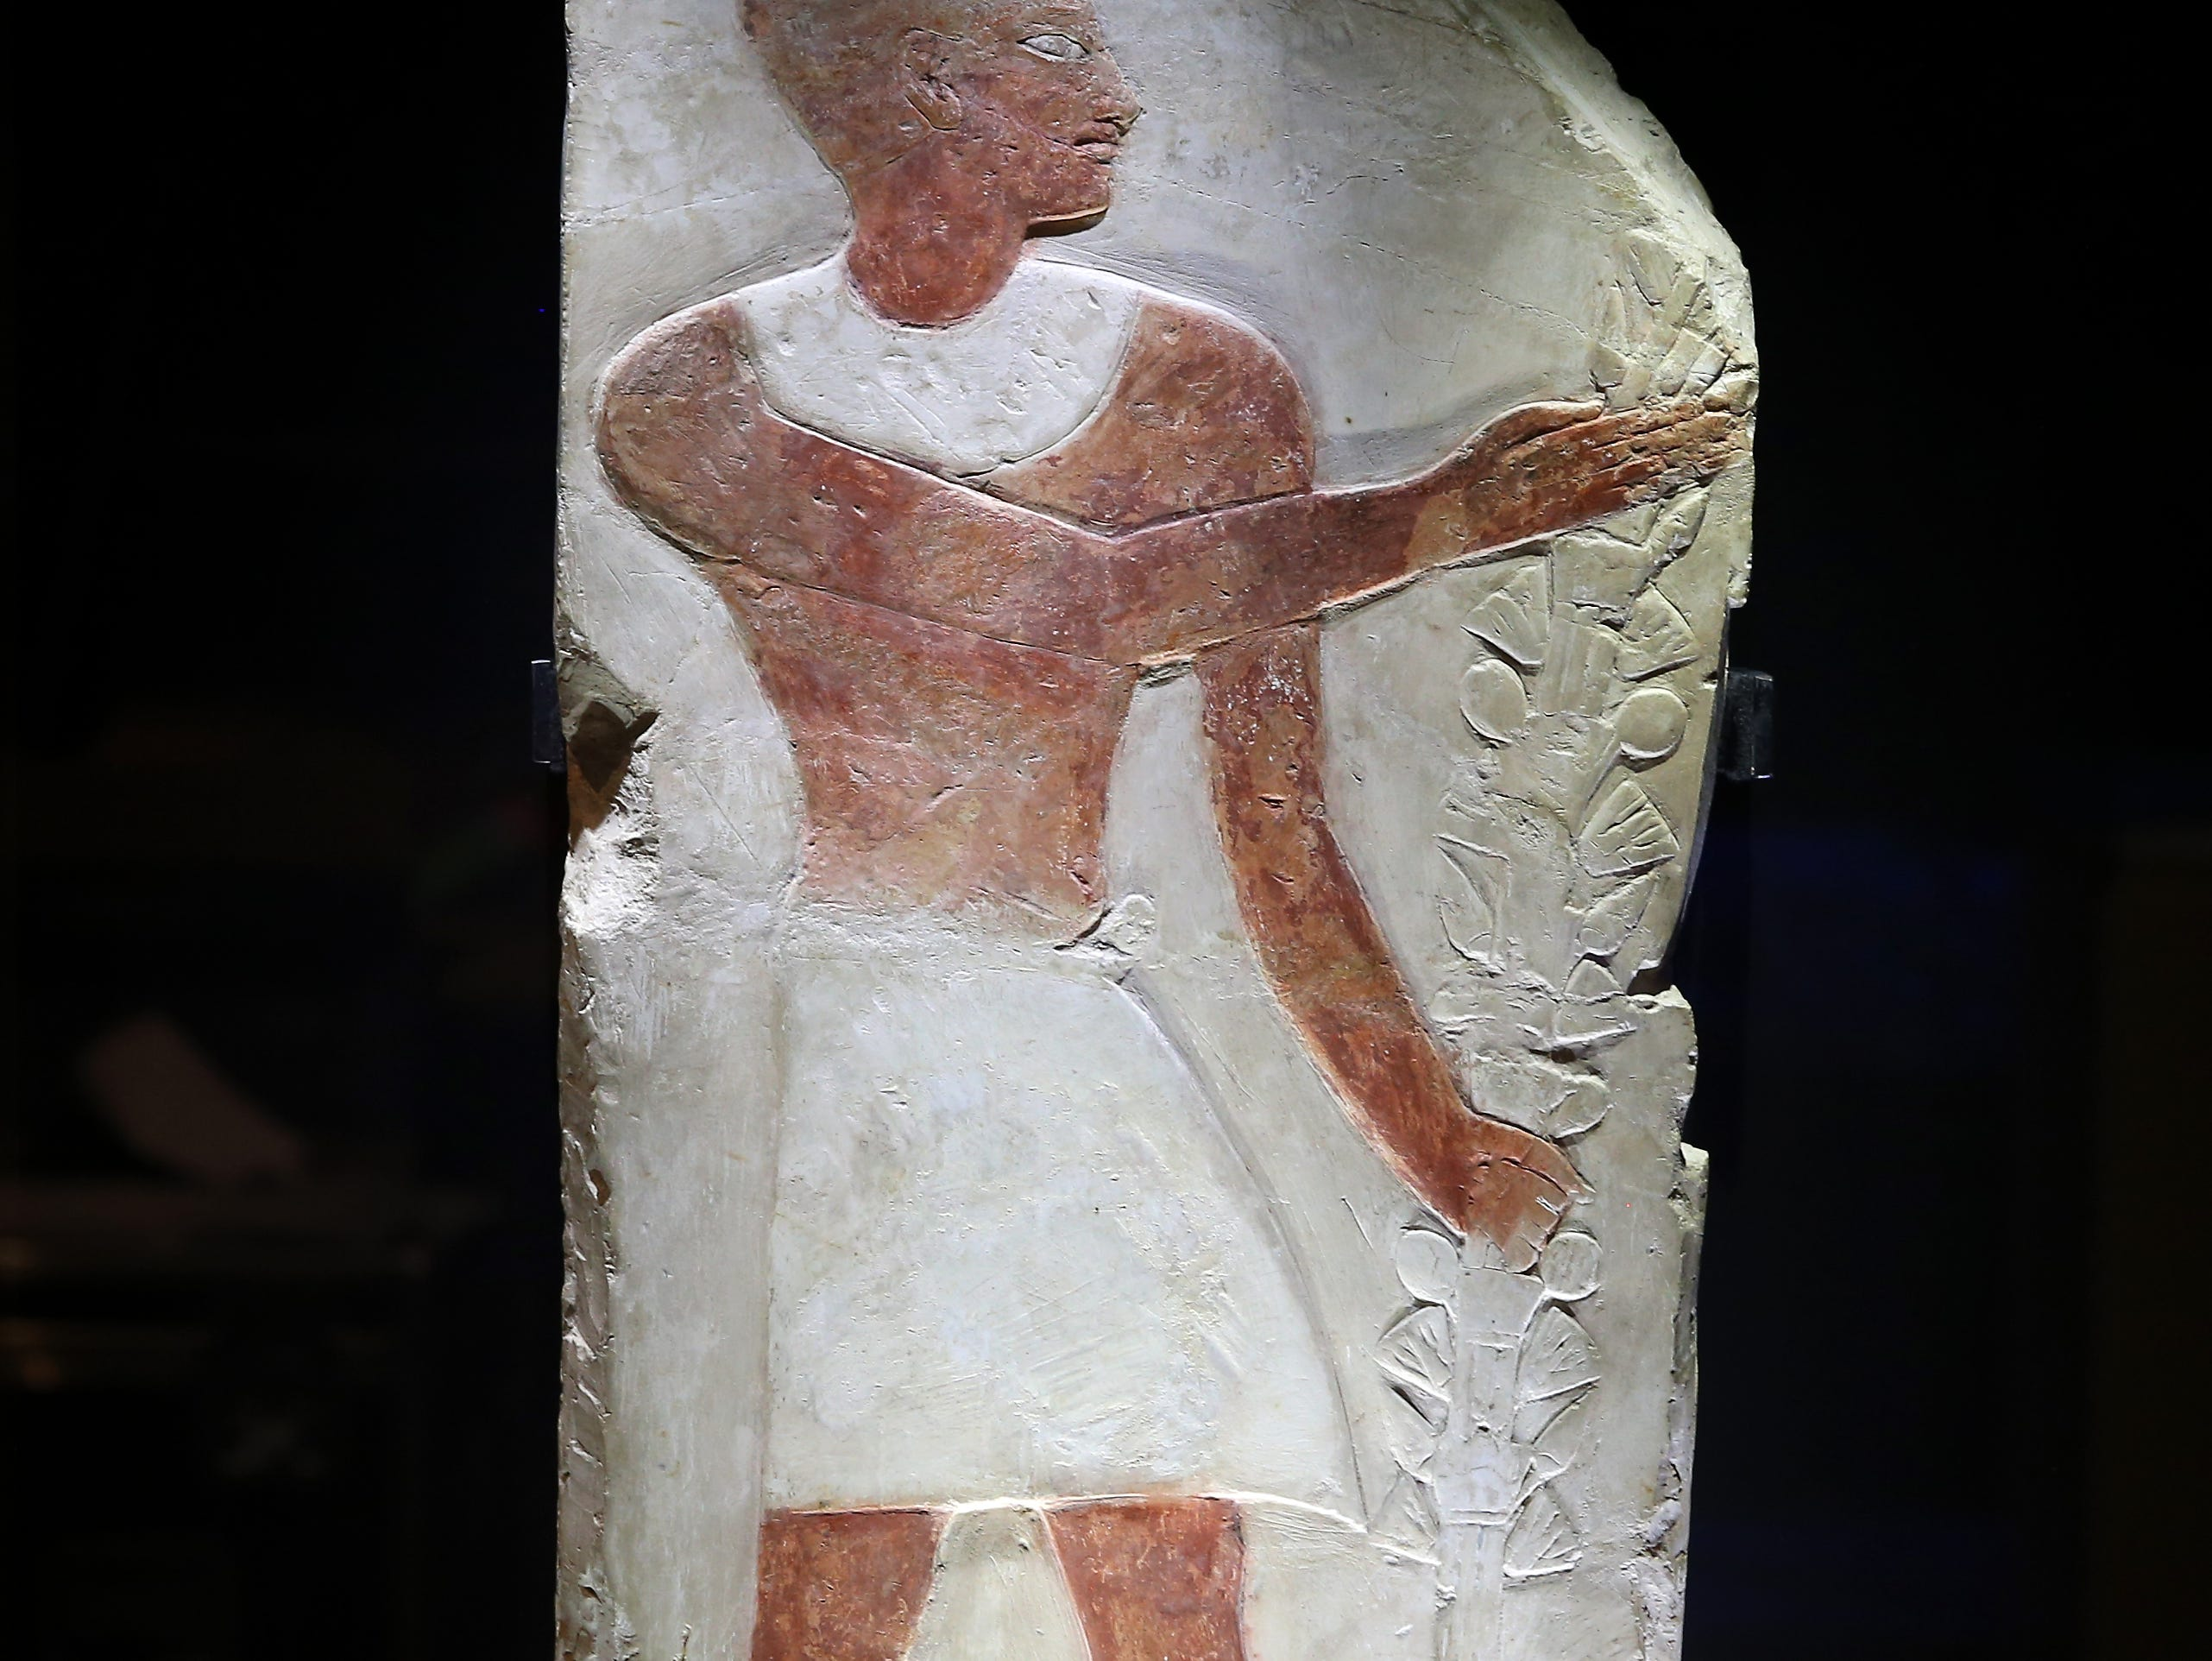 An ancient Egyptian relief, featuring a man with a festive bouquet, is uncrated for display, Thursday, Feb. 7, 2019, at Cincinnati Museum Center in Cincinnati. The relief is made of limestone and is about 3,500 years old.